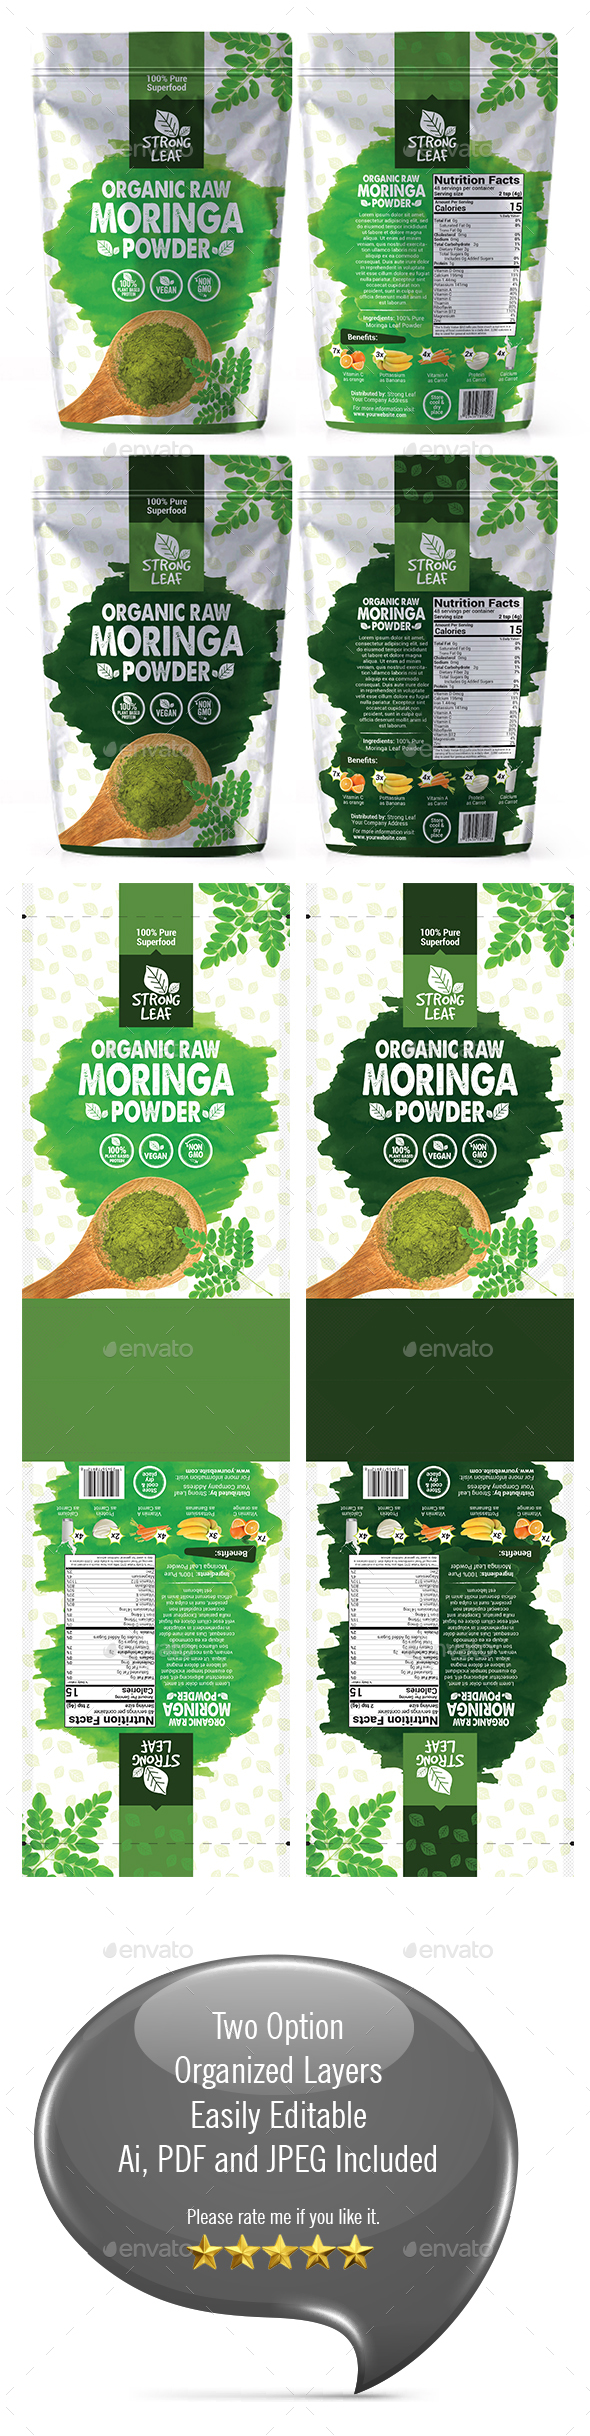 Moringa Powder Bag Packaging Template - Packaging Print Templates